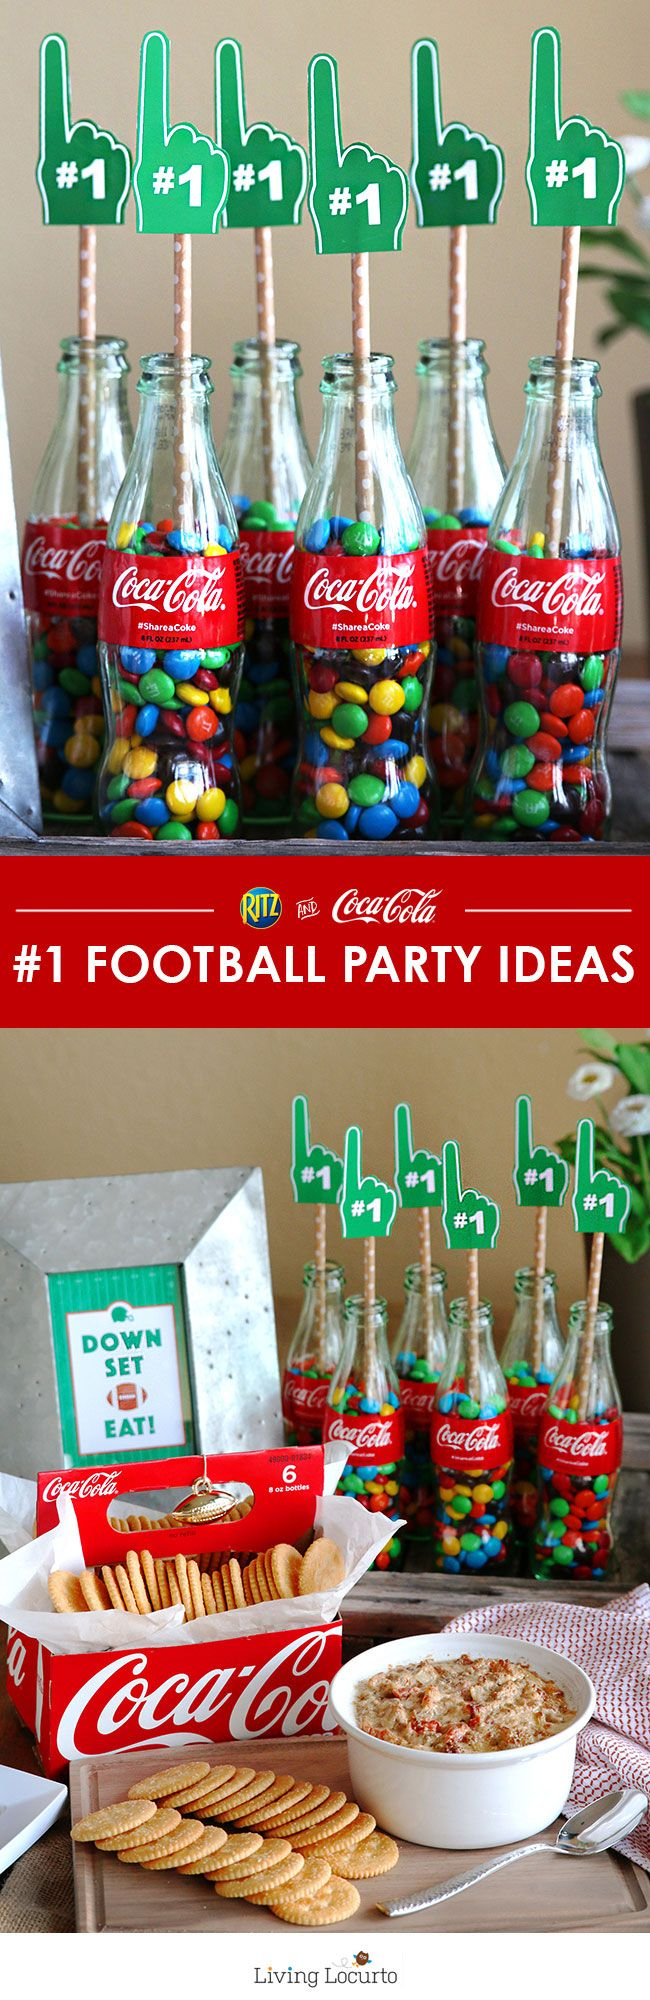 Free Football printables. These simple football party ideas and cute free football printables are a perfect way to decorate your home for game day. Decorate your home with classic Coke glass bottles and a football printable. DIY Football Party Ideas by LivingLocurto.com